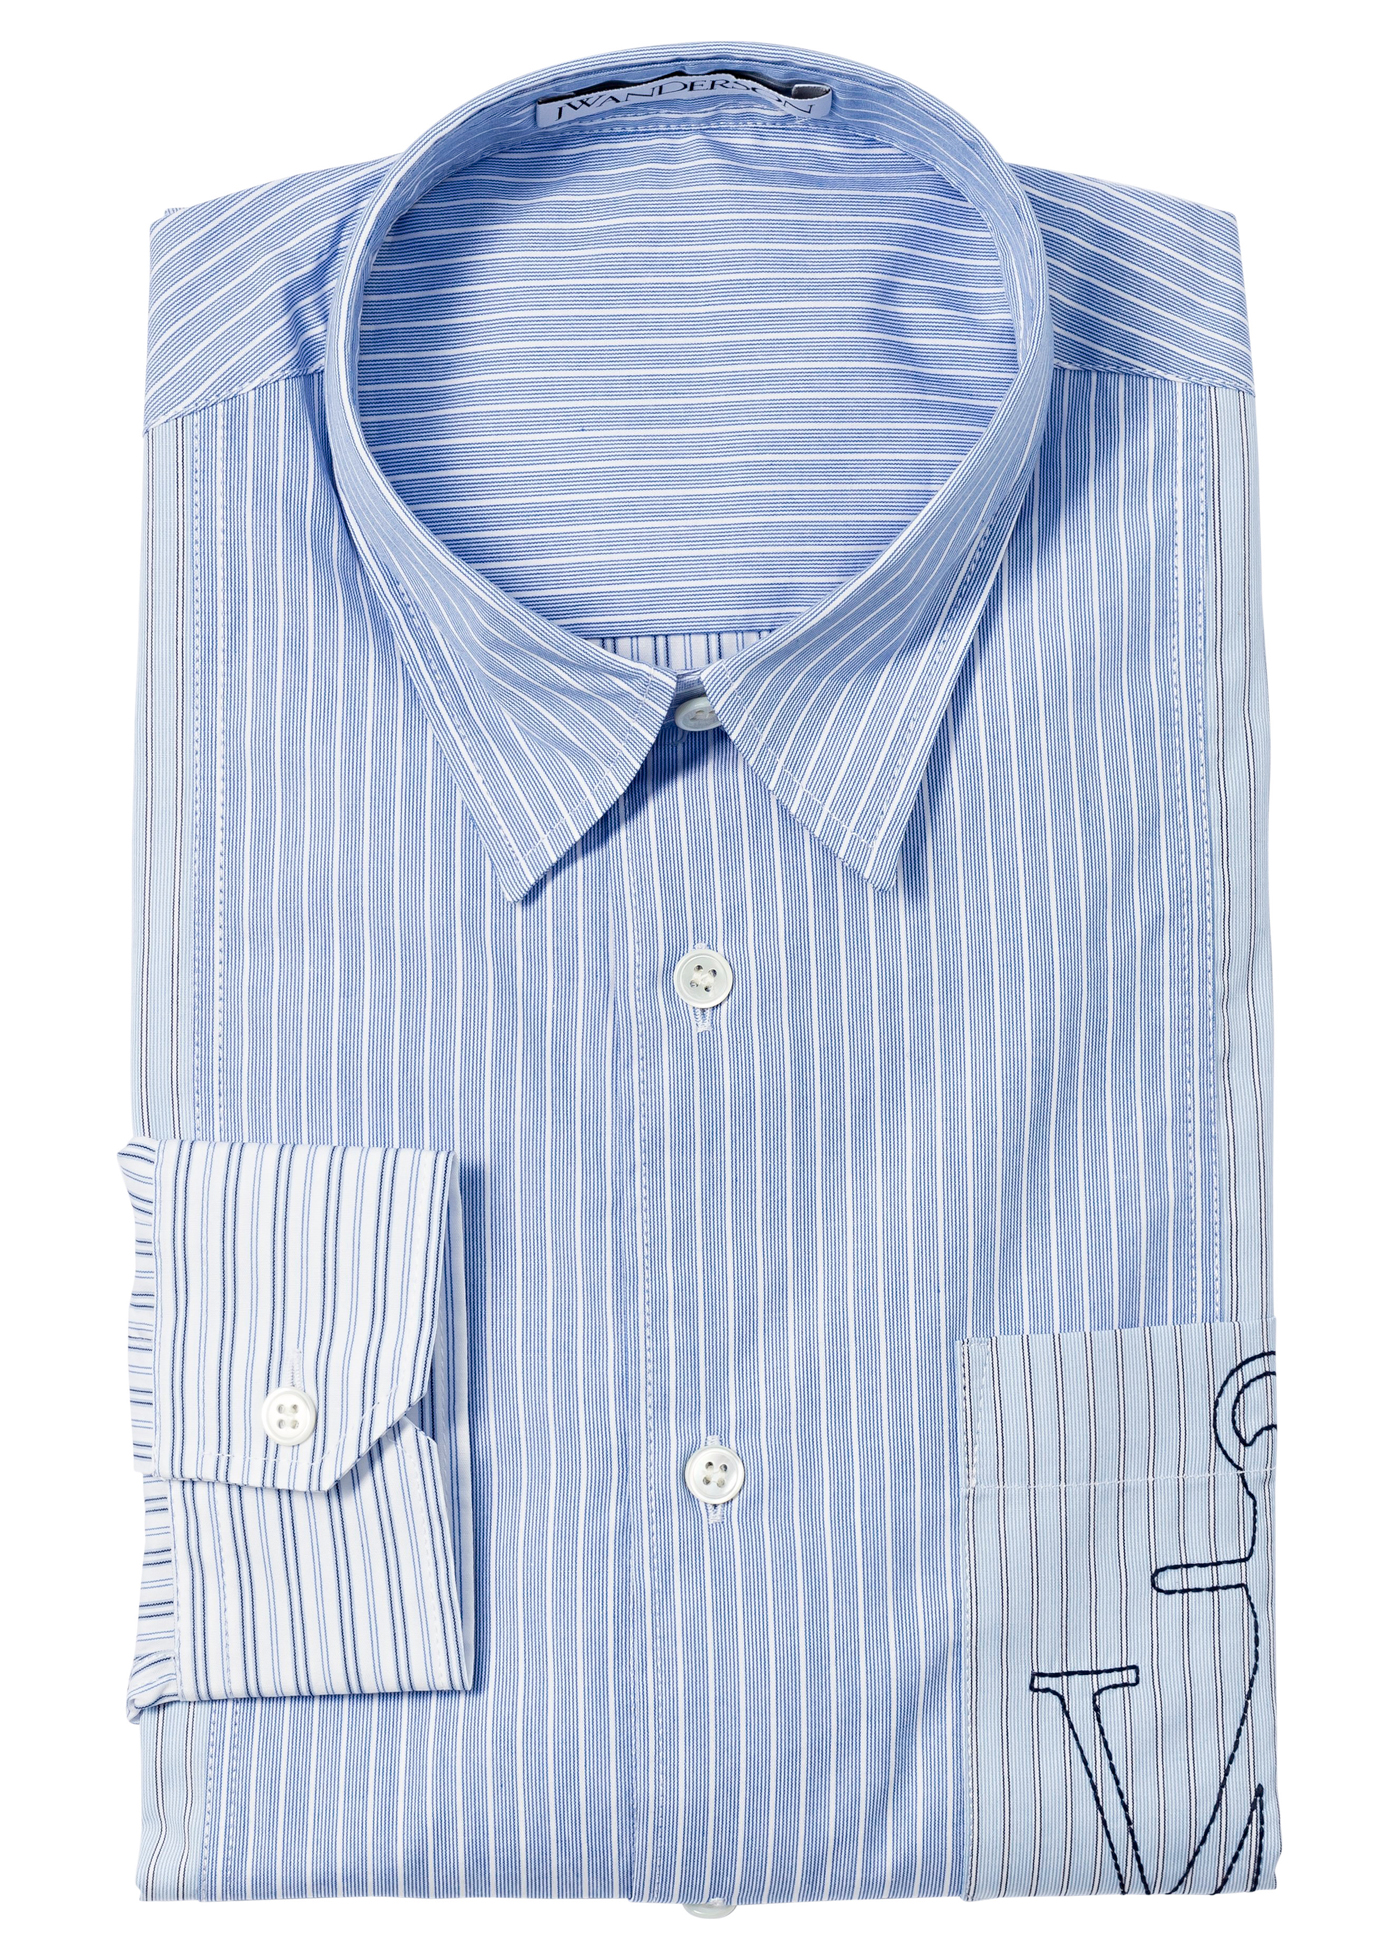 RELAXED STRIPE PATCHWORK SHIRT image number 0